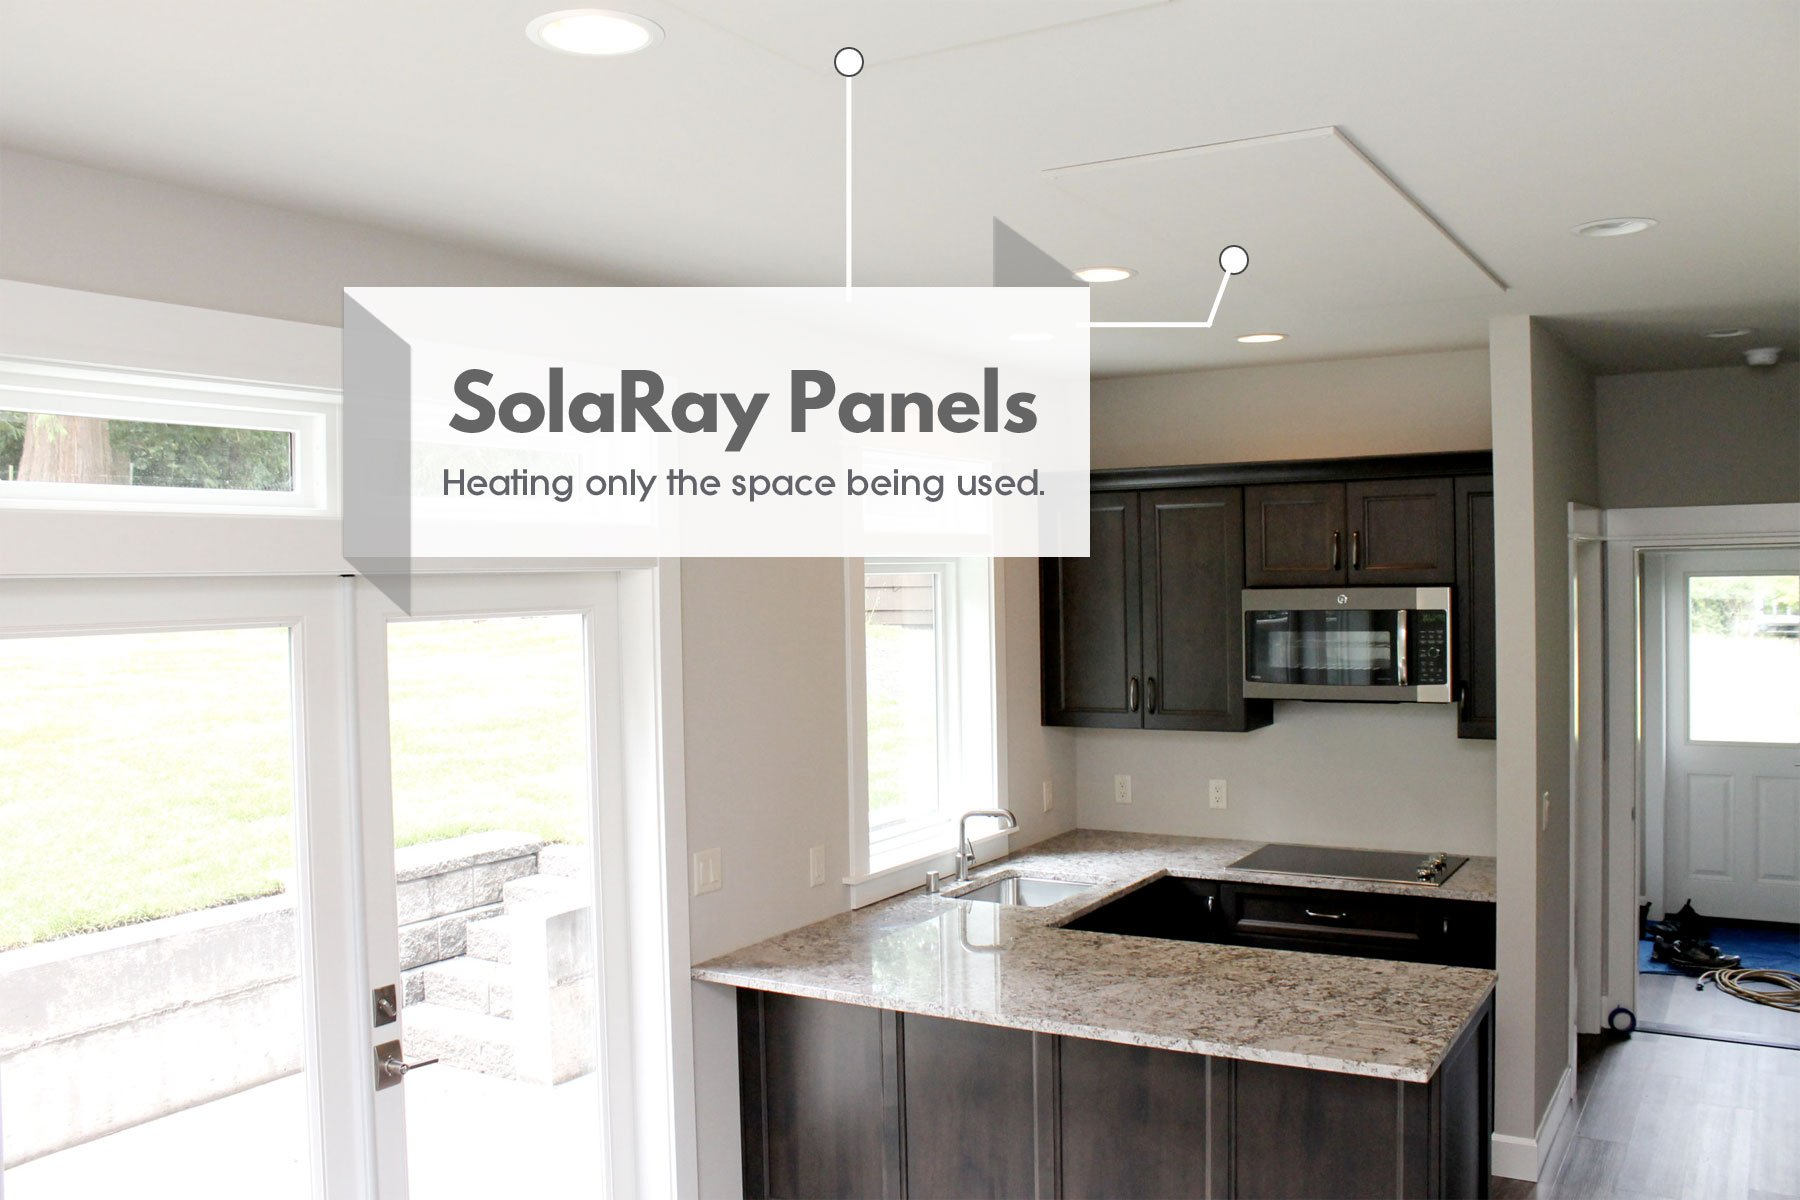 SolaRay panel heater mounted on a kitchen ceiling